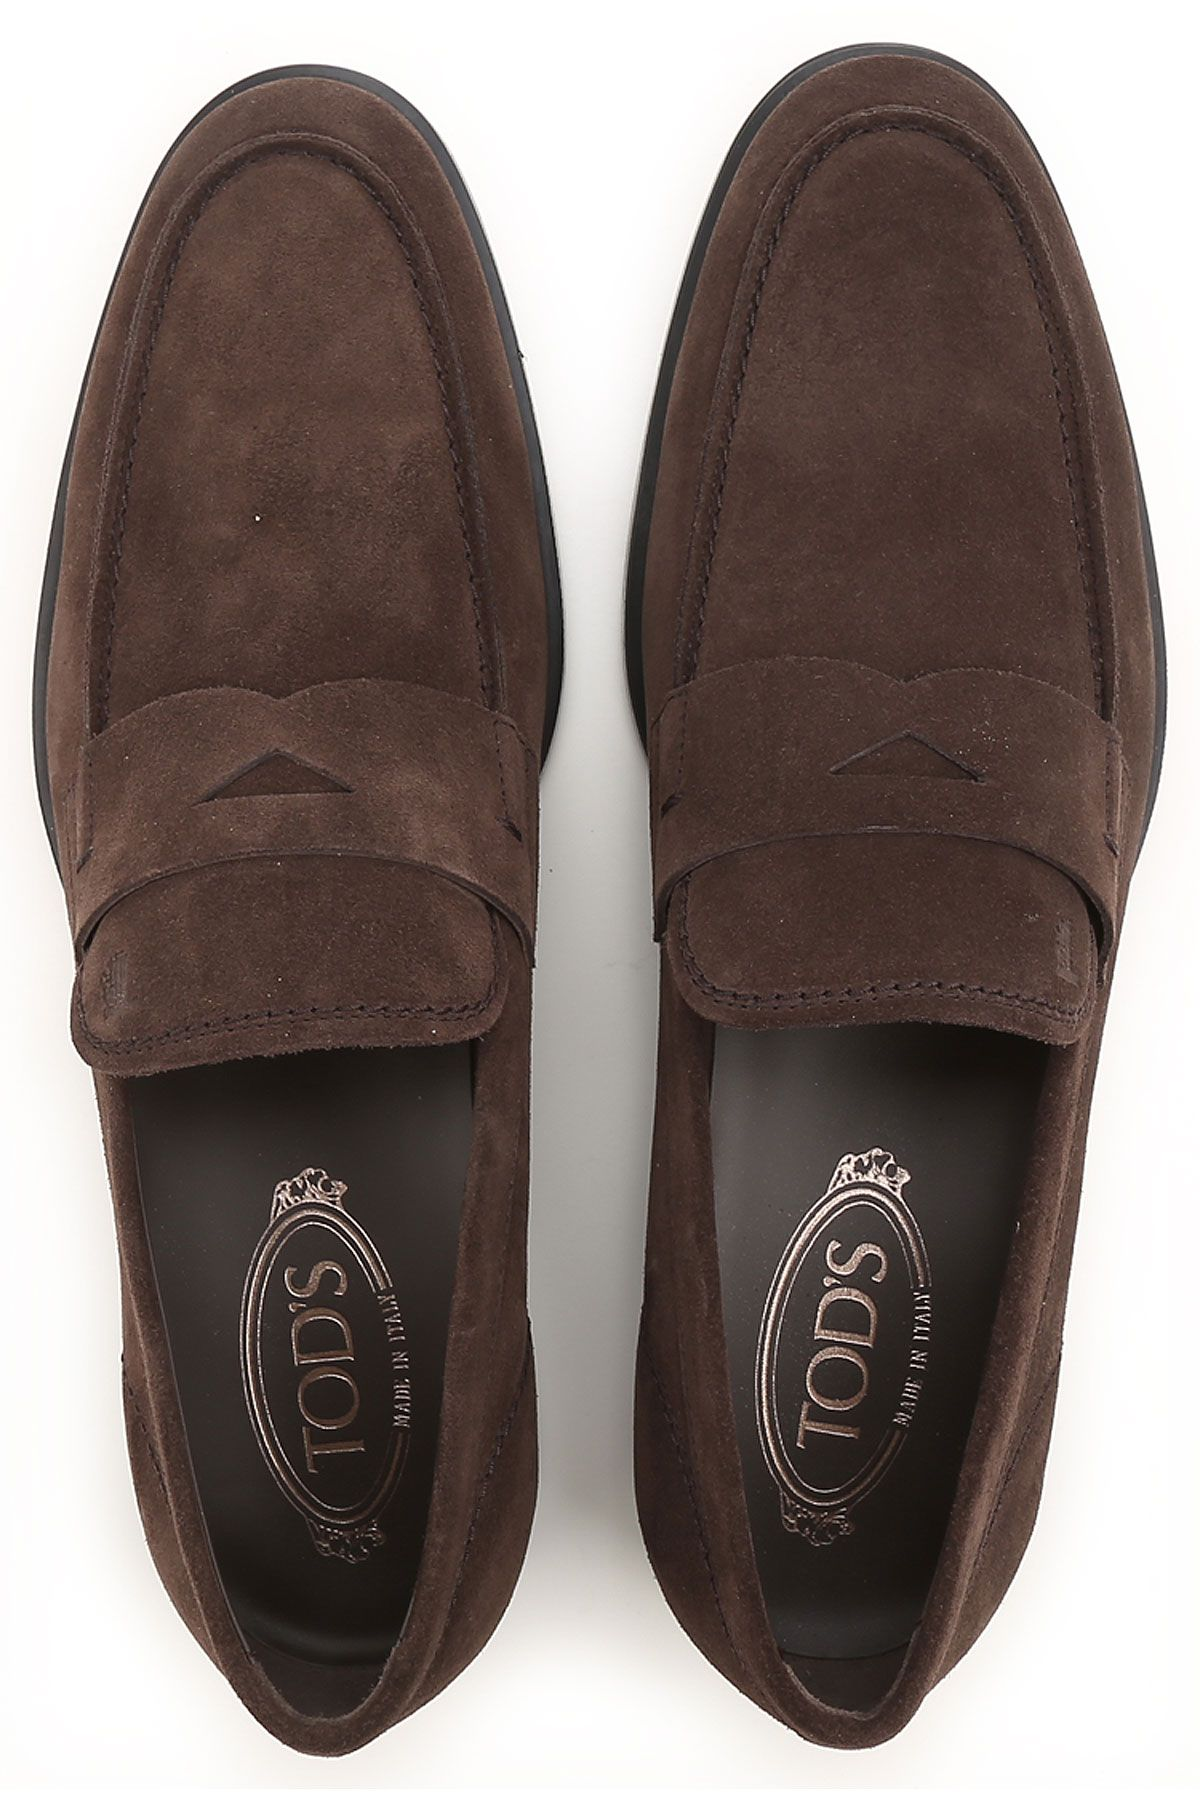 4578b19b1d01 TOD'S Chaussures Homme | MEN'S FOOTWEAR in 2019 | Shoes, Moccasins ...